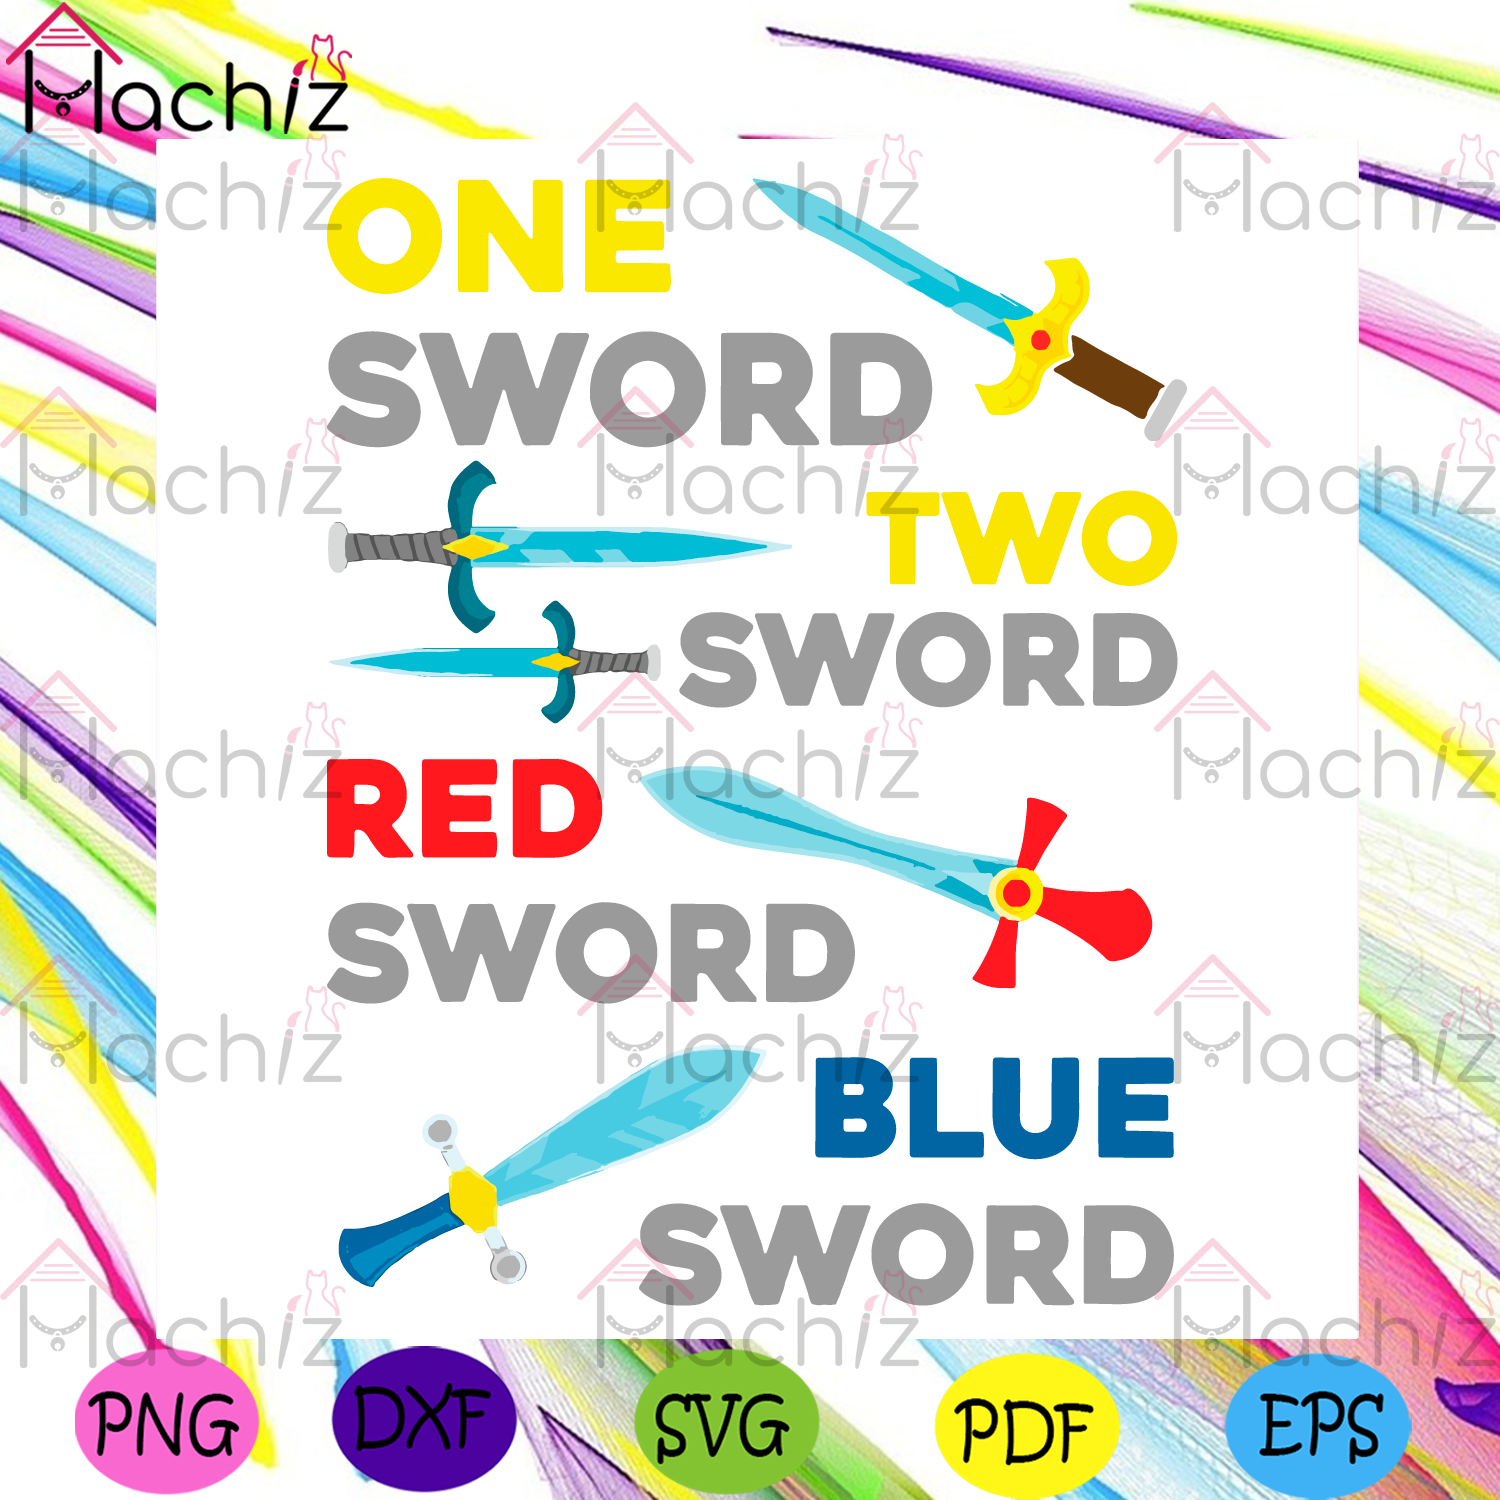 One Sword Two Sword Red Word Blue Sword Svg, Trending Svg, Dr Seuss Svg, Sword Svg, Dr Seuss Sword, Cat In The Hat, Dr Seuss Book, Dr Seuss Saying, Dr Seuss Quote, Dr Seuss Lover, Dr Seuss Clipart